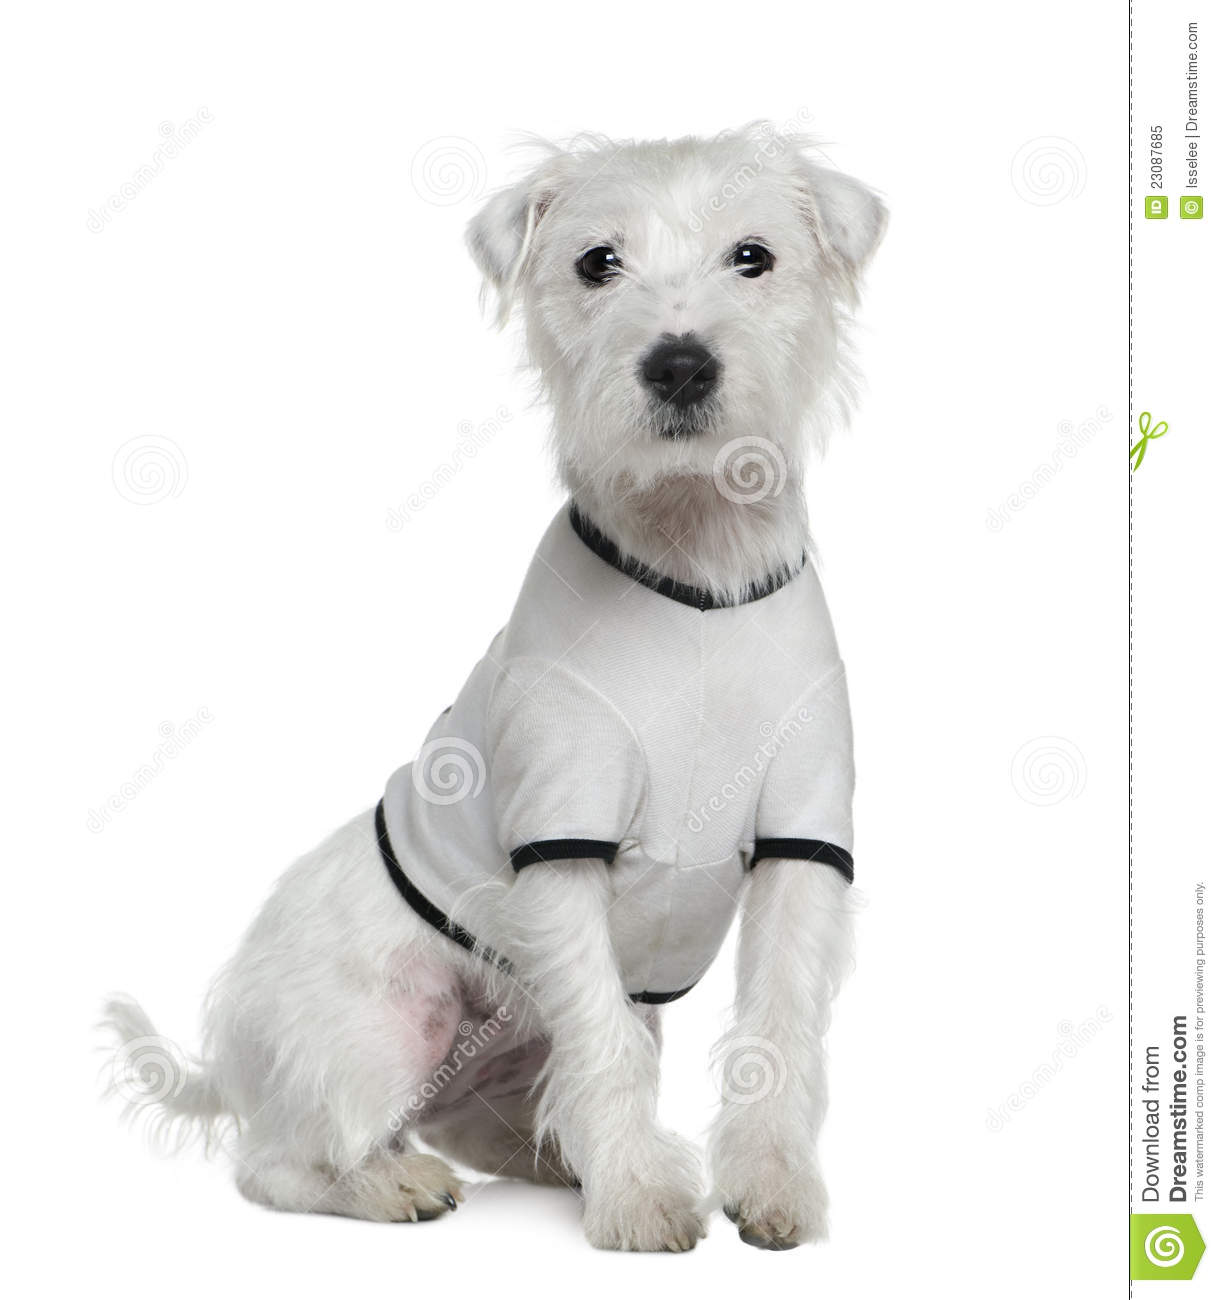 Parson Russell Terrier In White Shirt Royalty Free Stock Photo - Image ... White Parson Russell Terrier